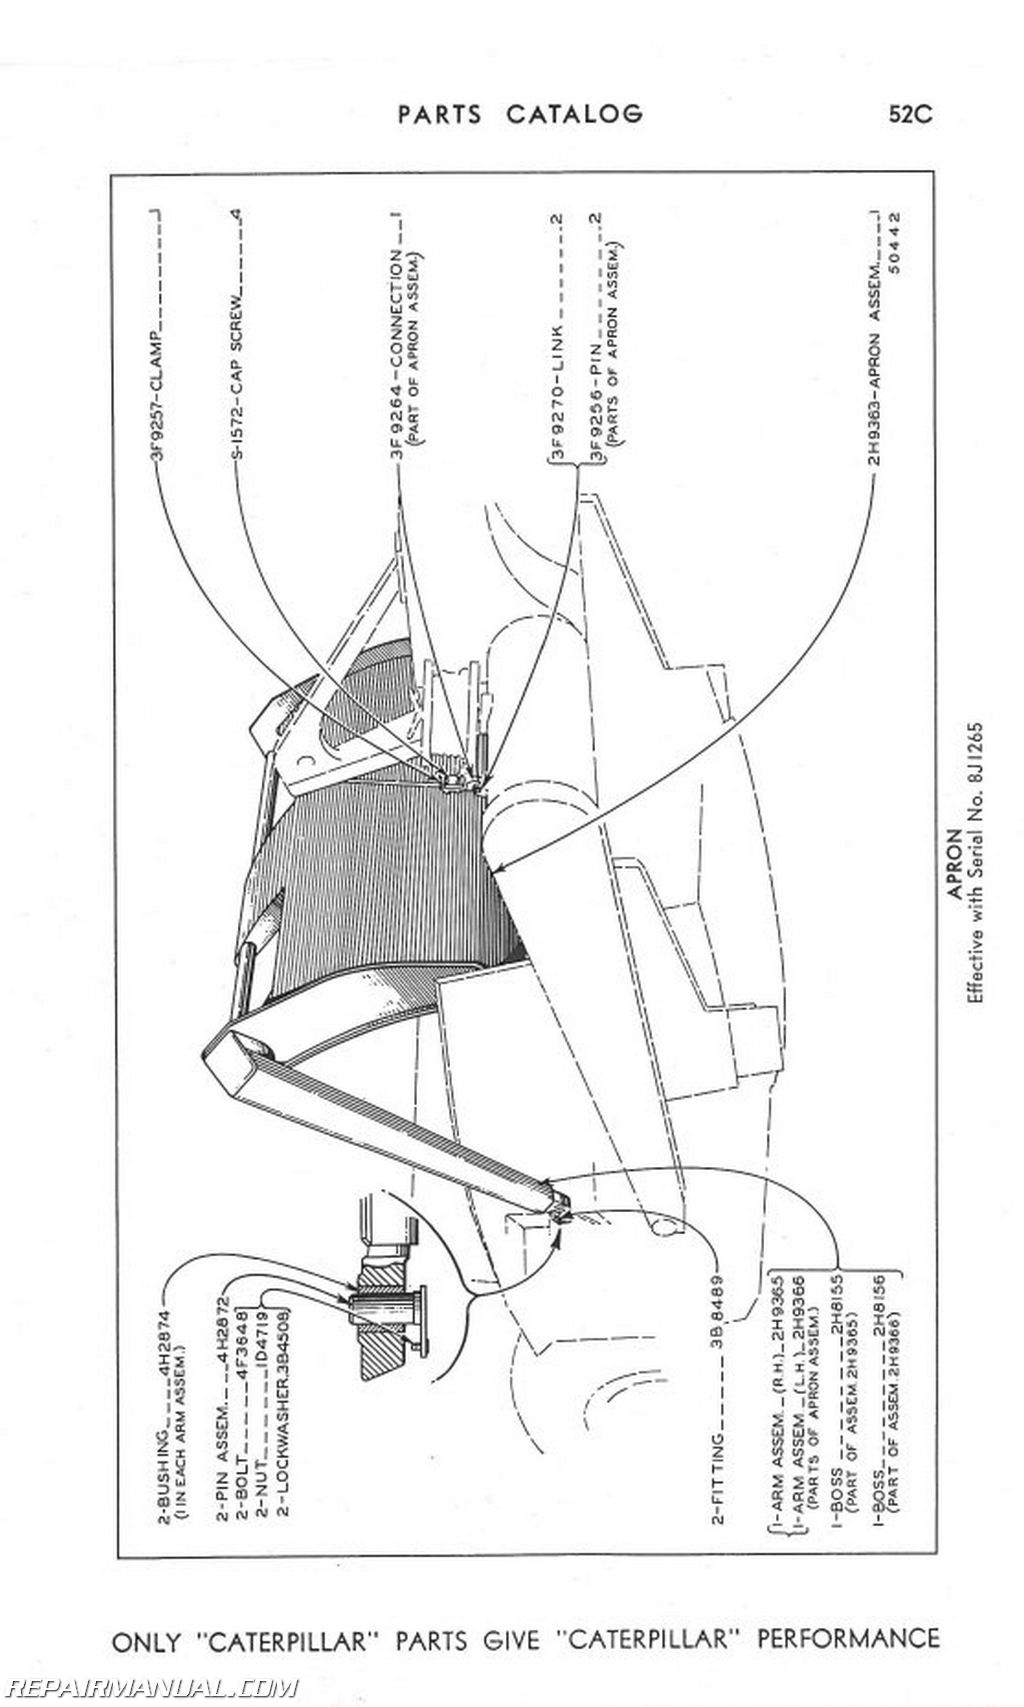 Caterpillar No 21 Scraper Parts Manual